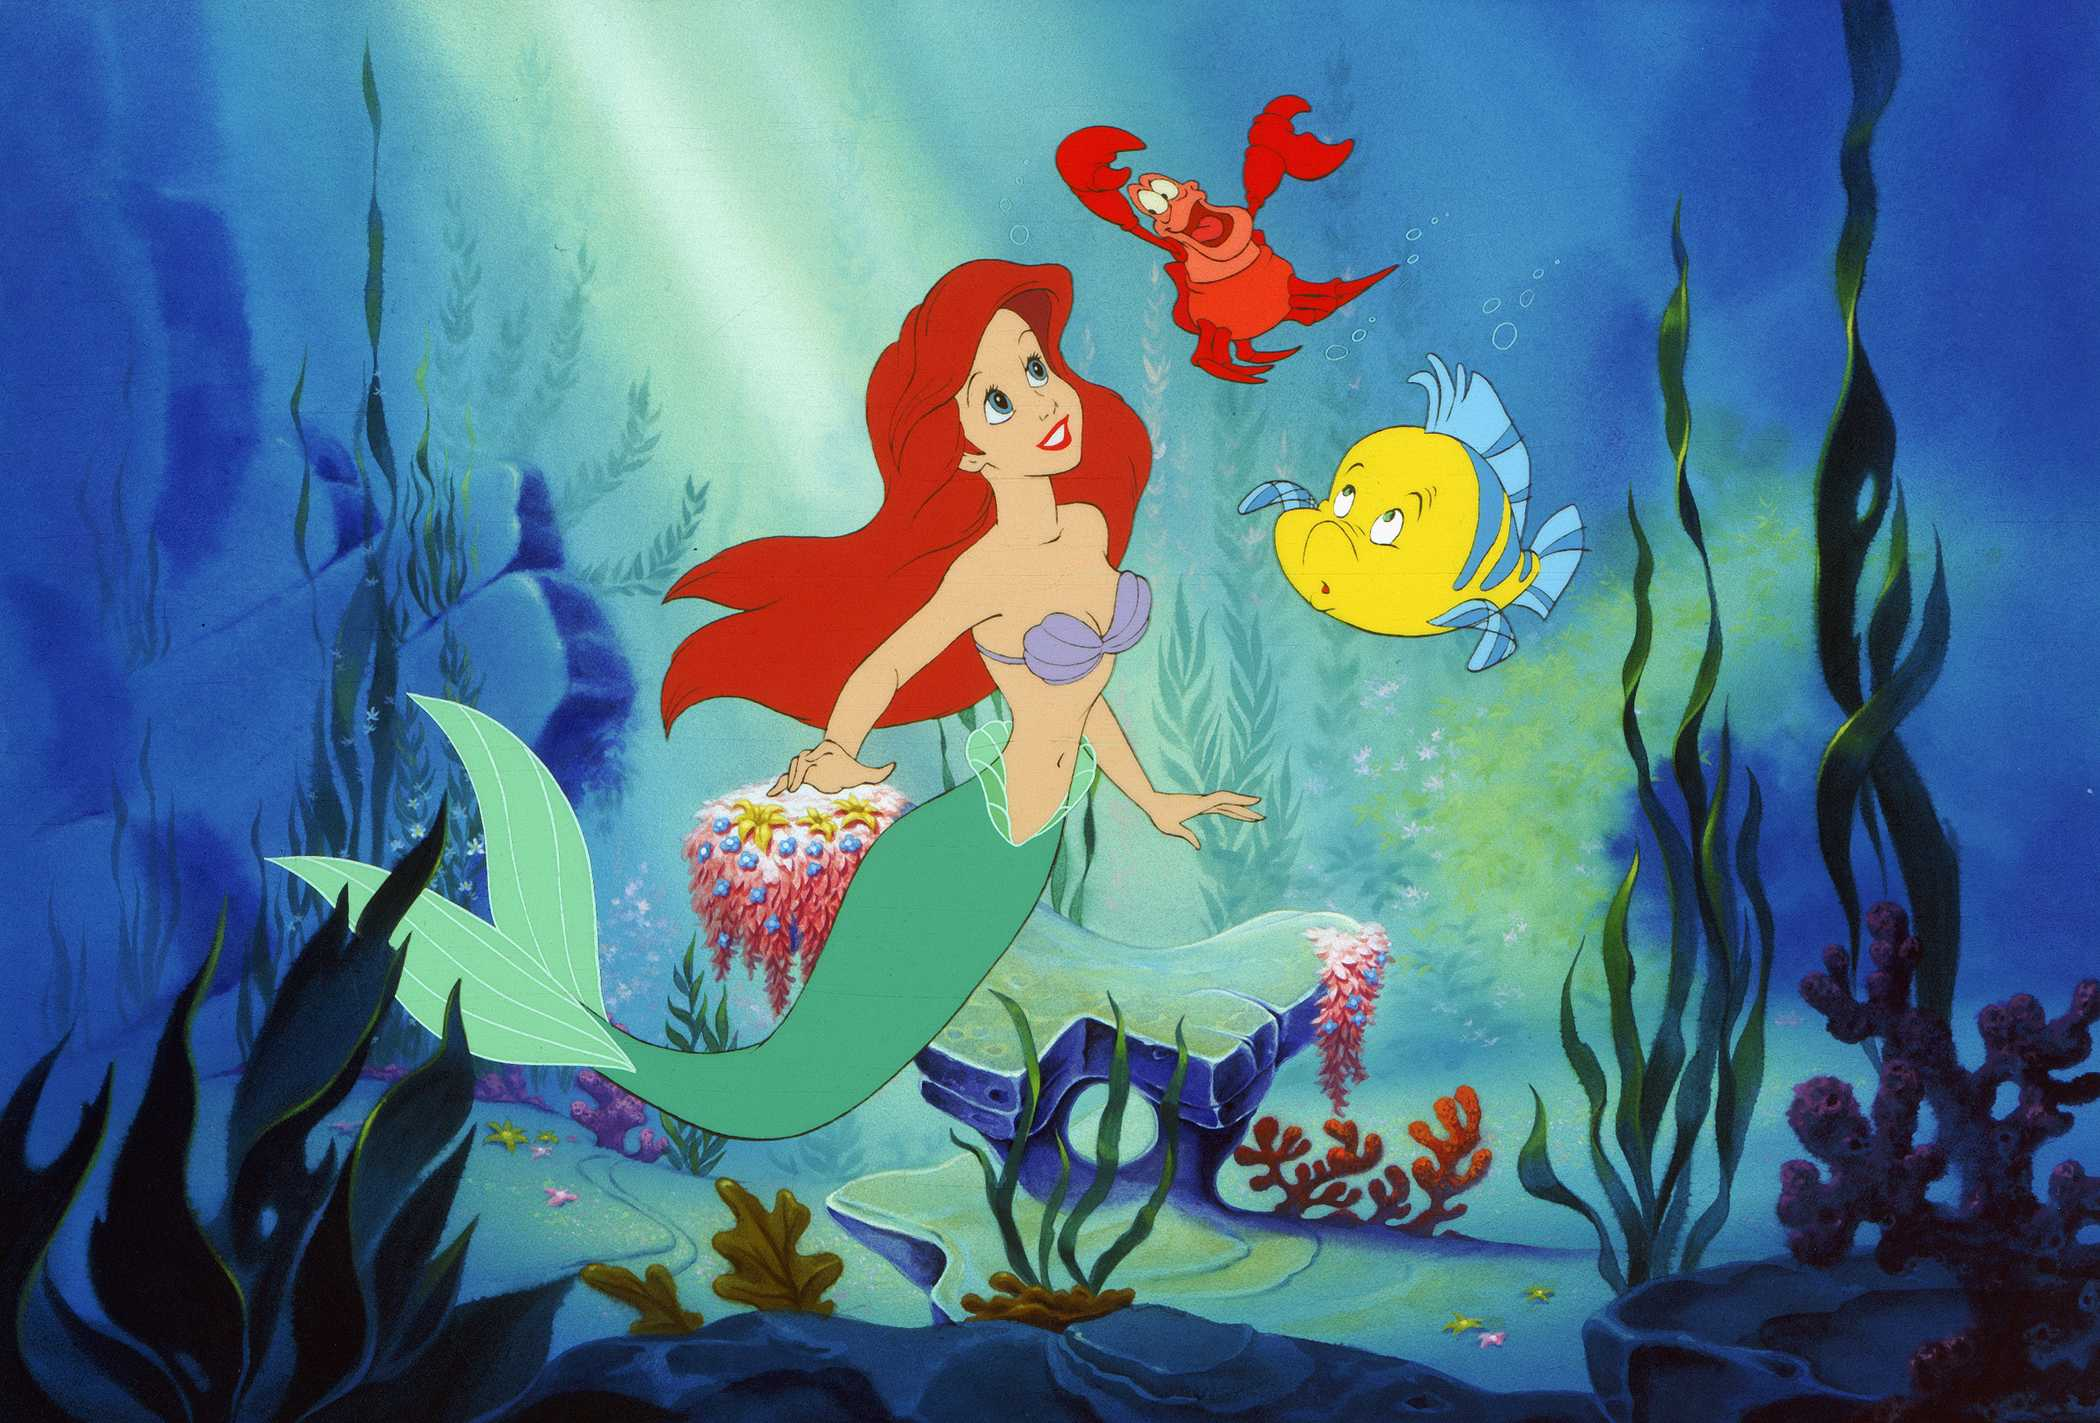 Dark Little Mermaid Film Forthcoming